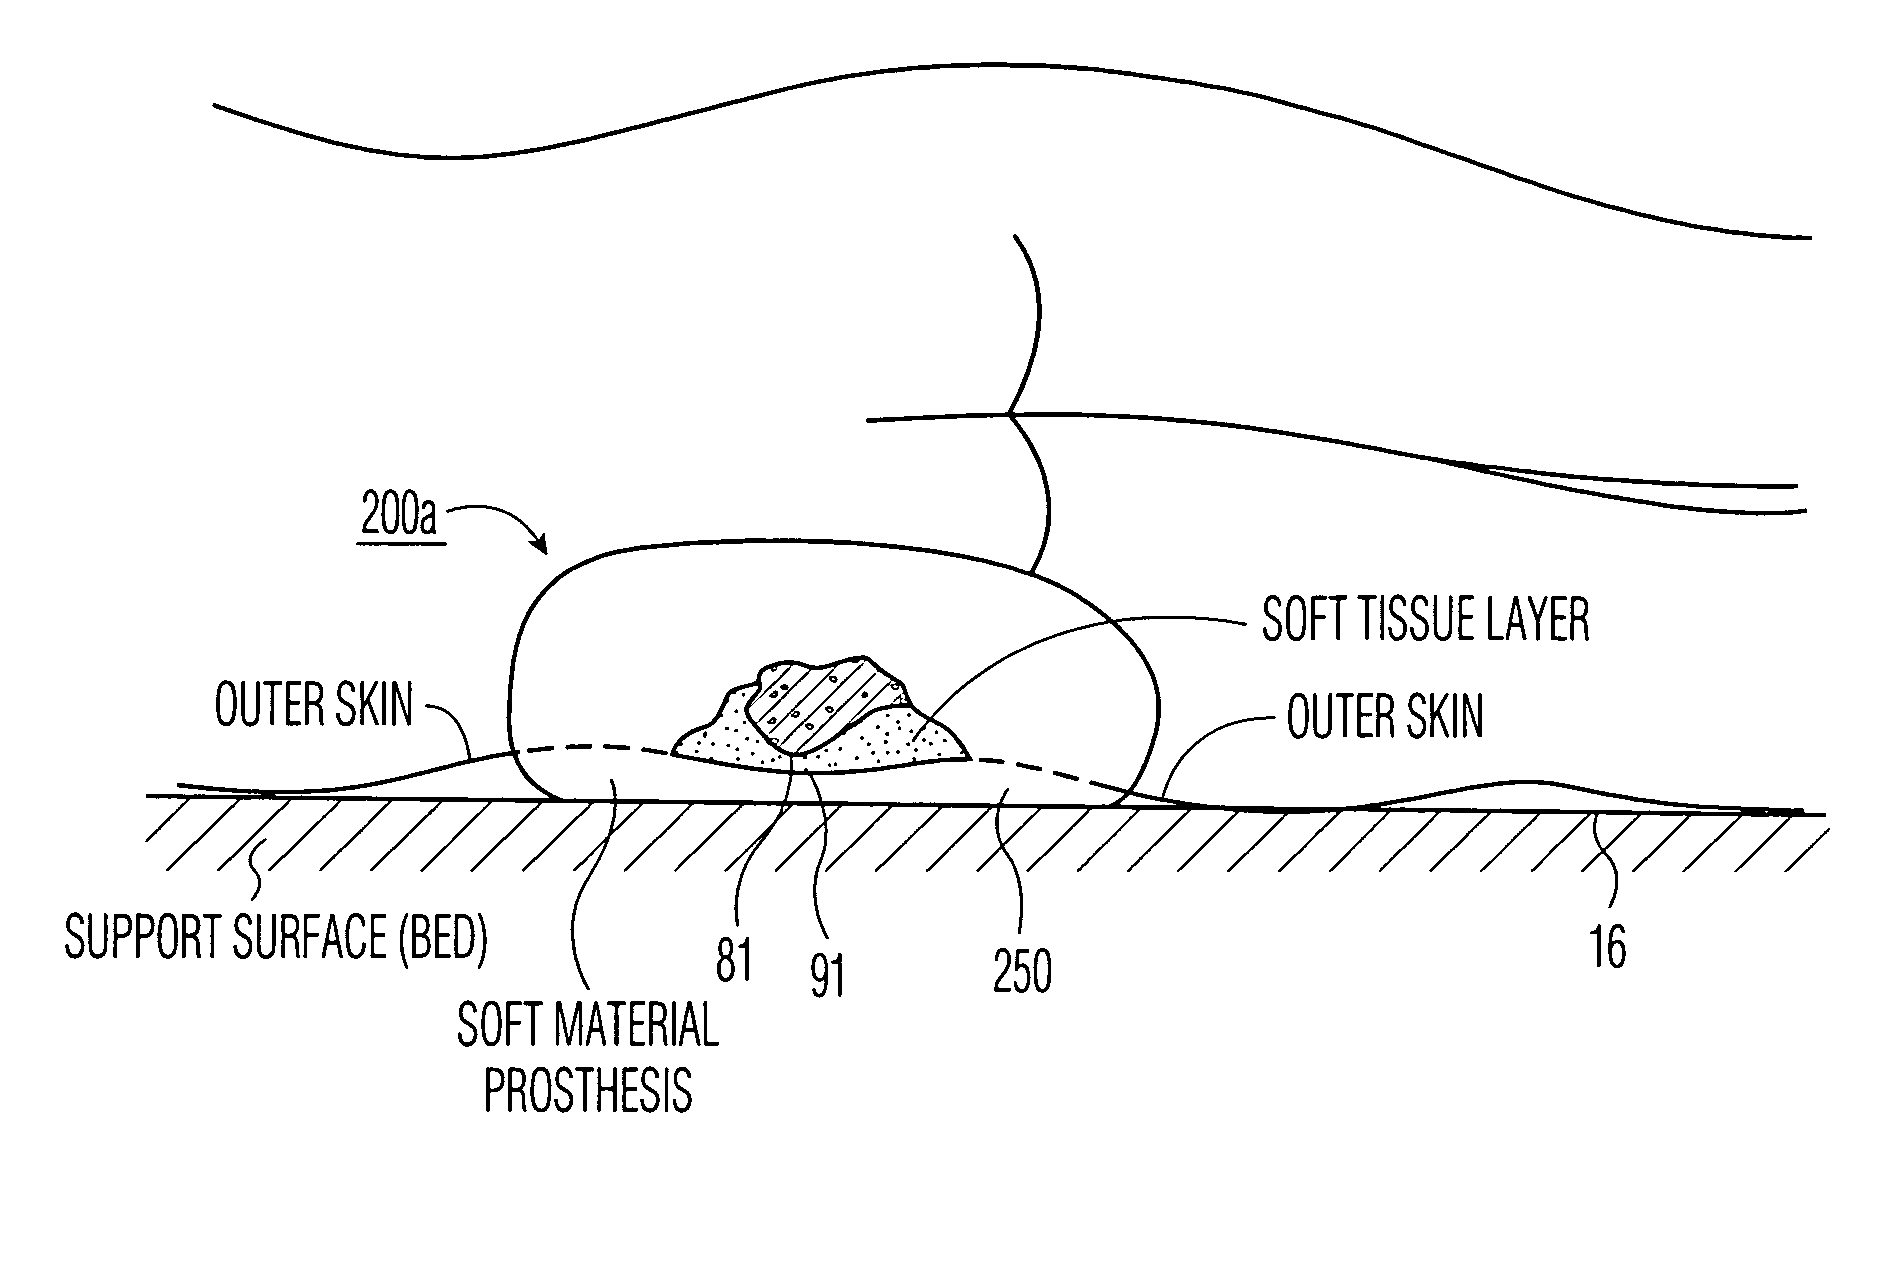 patent us7141032 - apparatus and methods for preventing and  or healing pressure ulcers